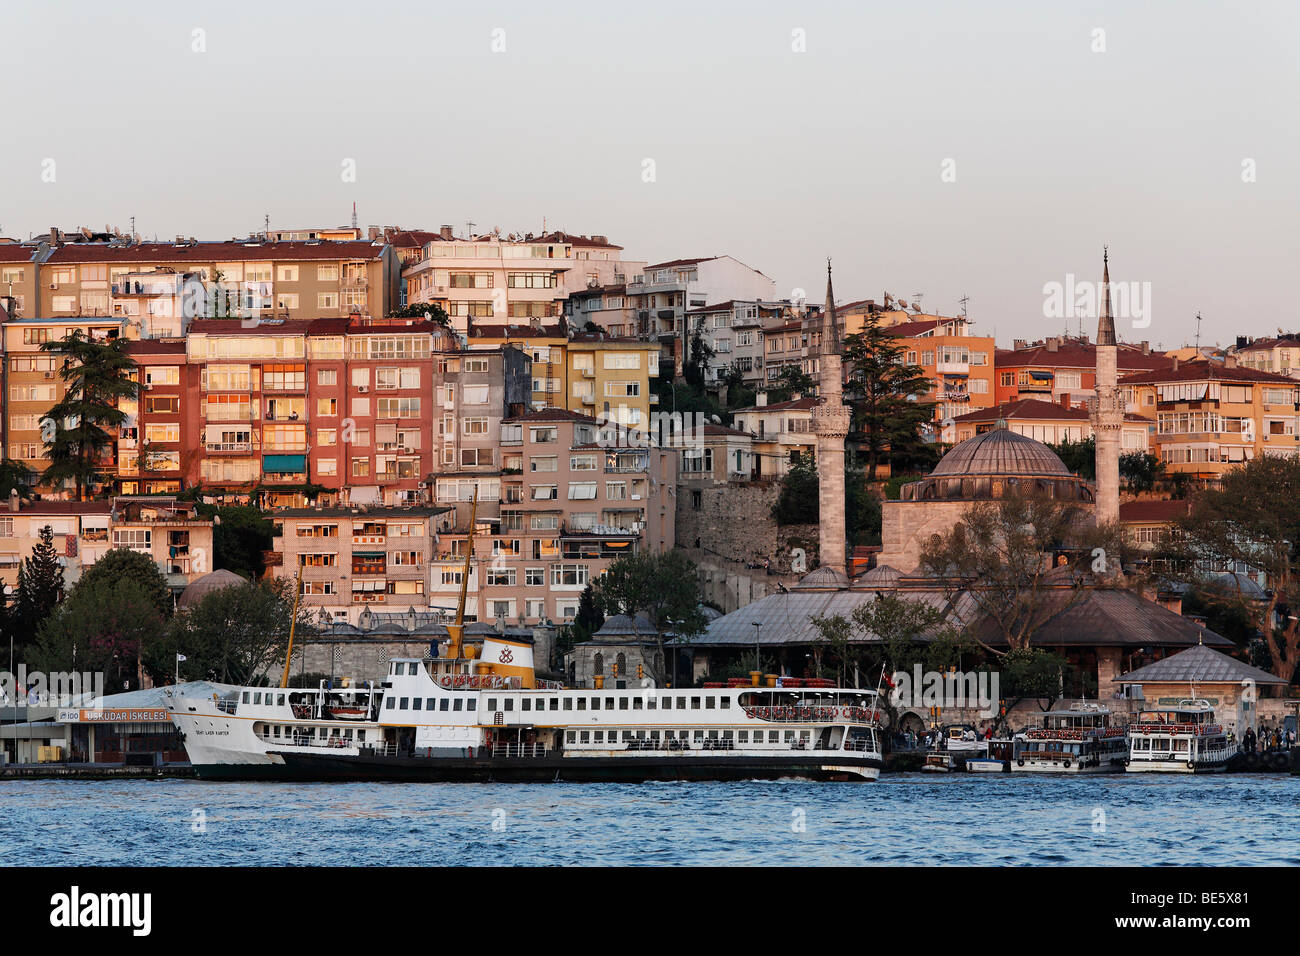 View on the Ueskuedar ferry terminal, Iskele Mosque, evening mood, Bosphorus shore, Istanbul, Turkey - Stock Image